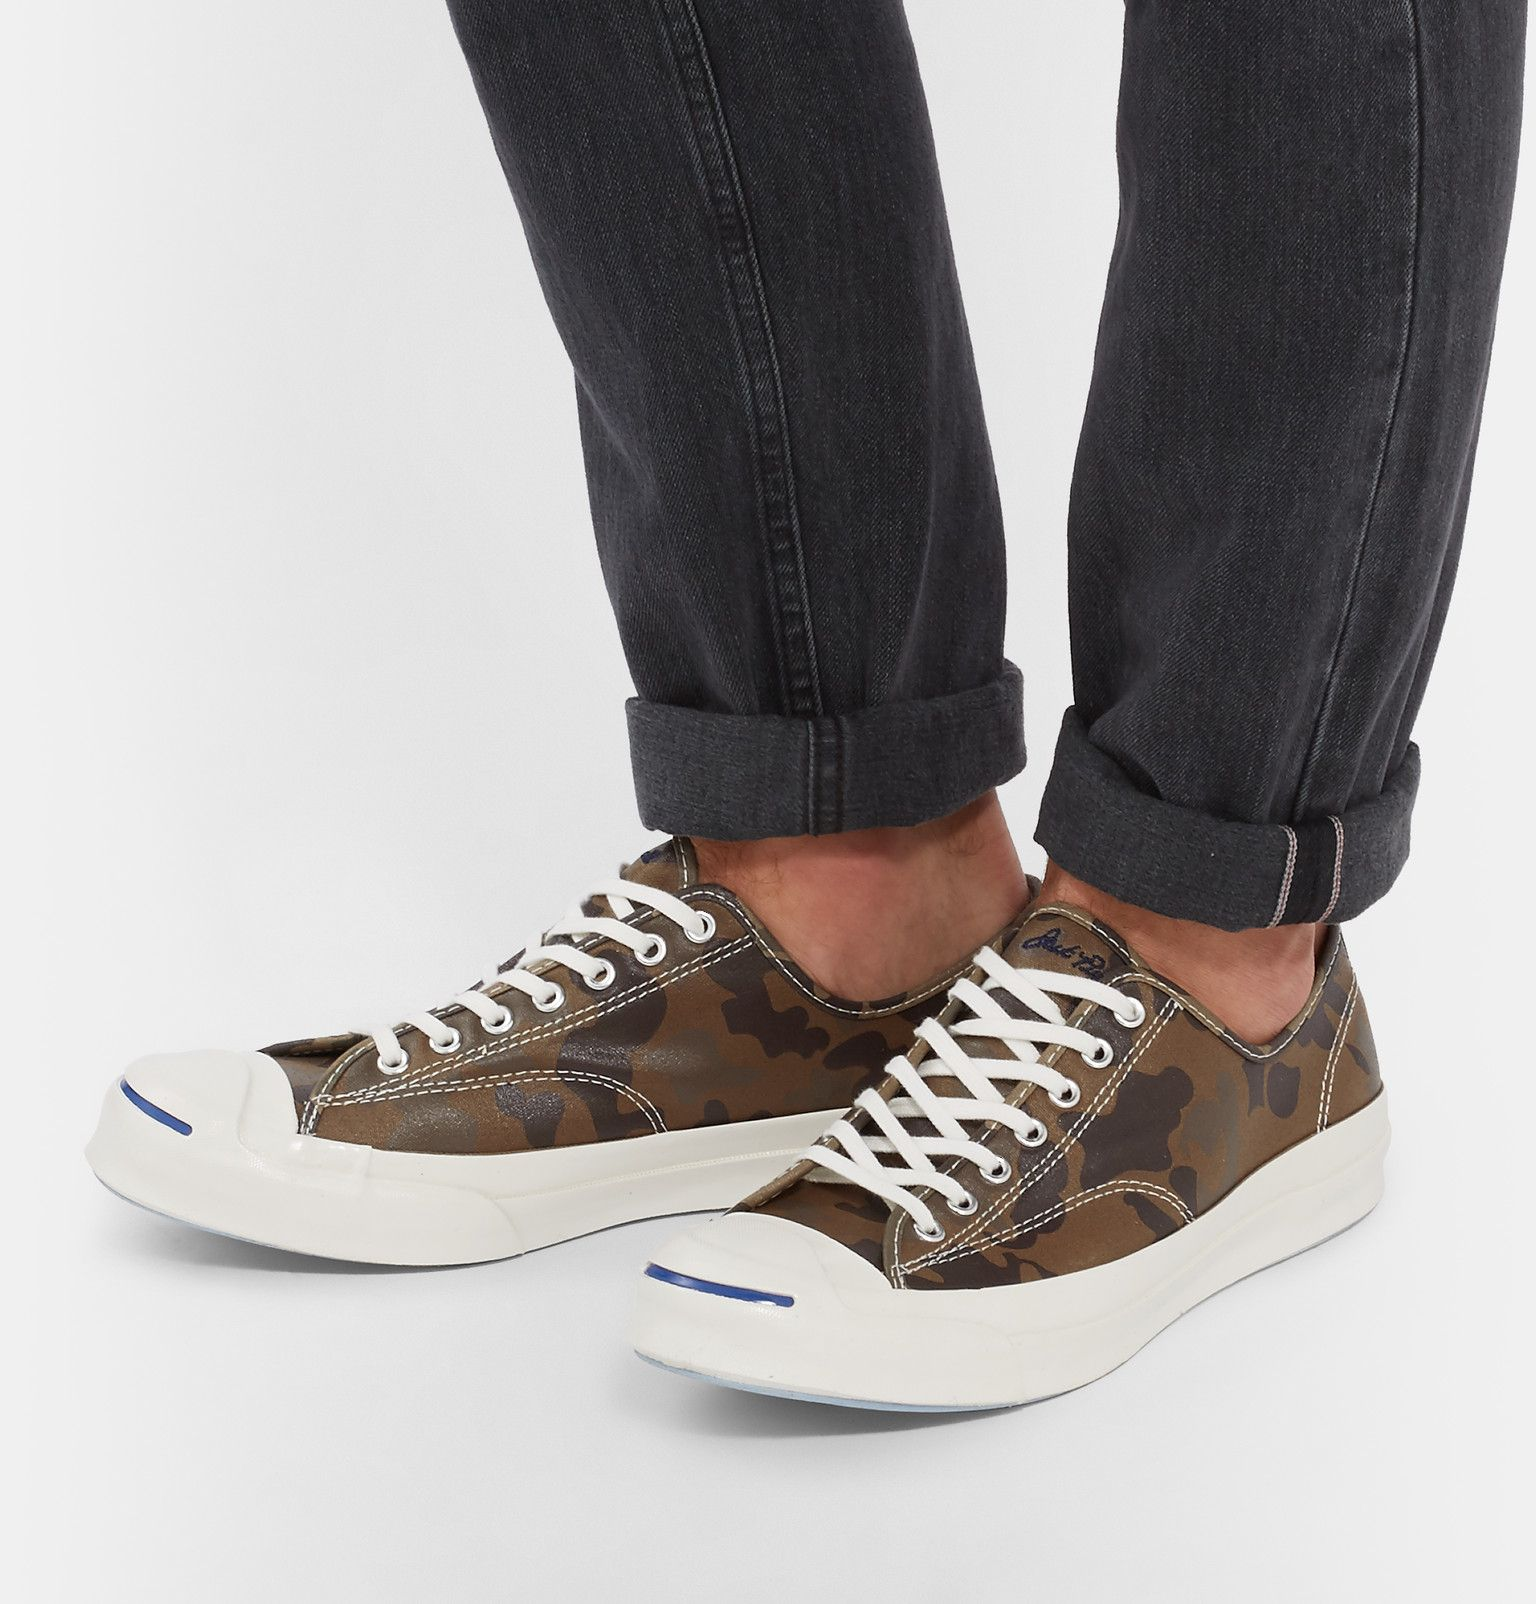 CONVERSE by JACK PURCELL - Sneakers - Men - Camo Brown Suede Sneakers